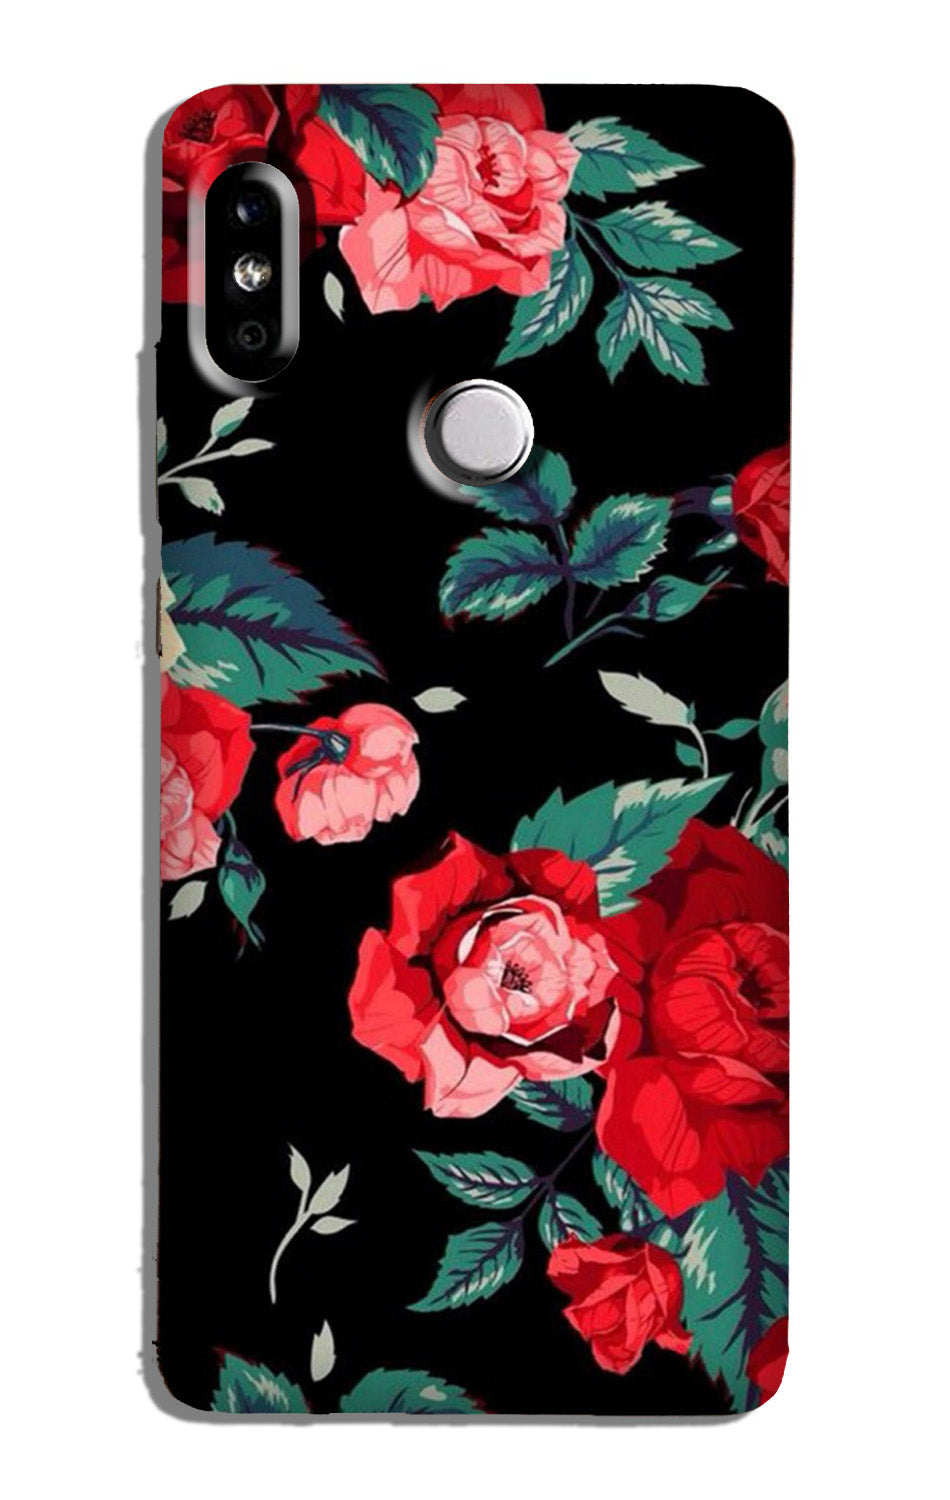 Red Rose Case for Redmi 6 Pro